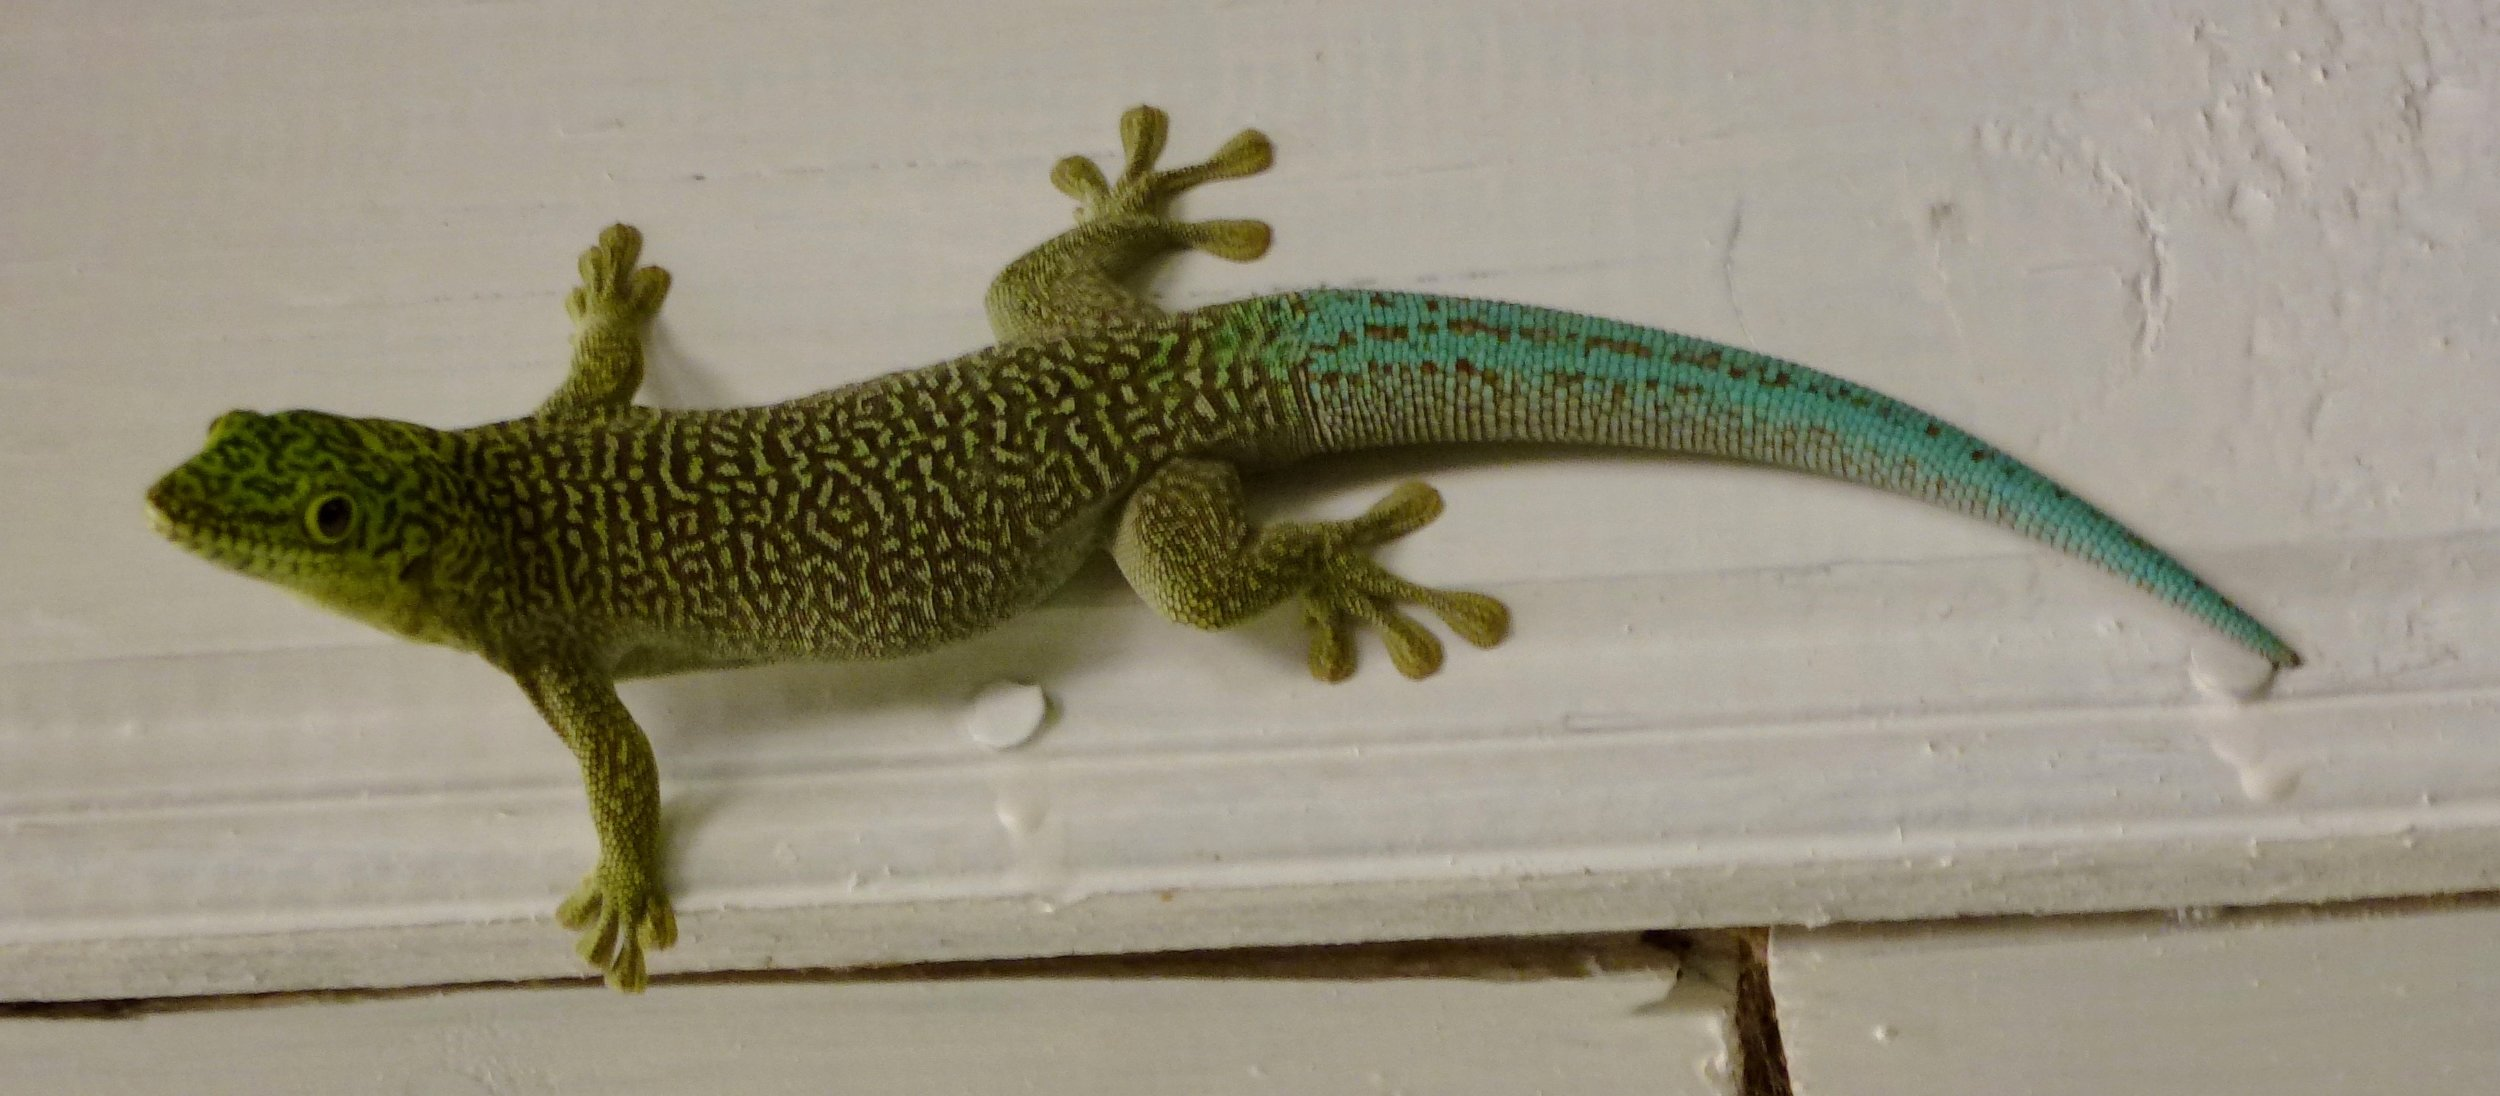 Standing's Day Gecko (Phelsuma standingi) on a building, where we most commonly spotted them. Ifaty.